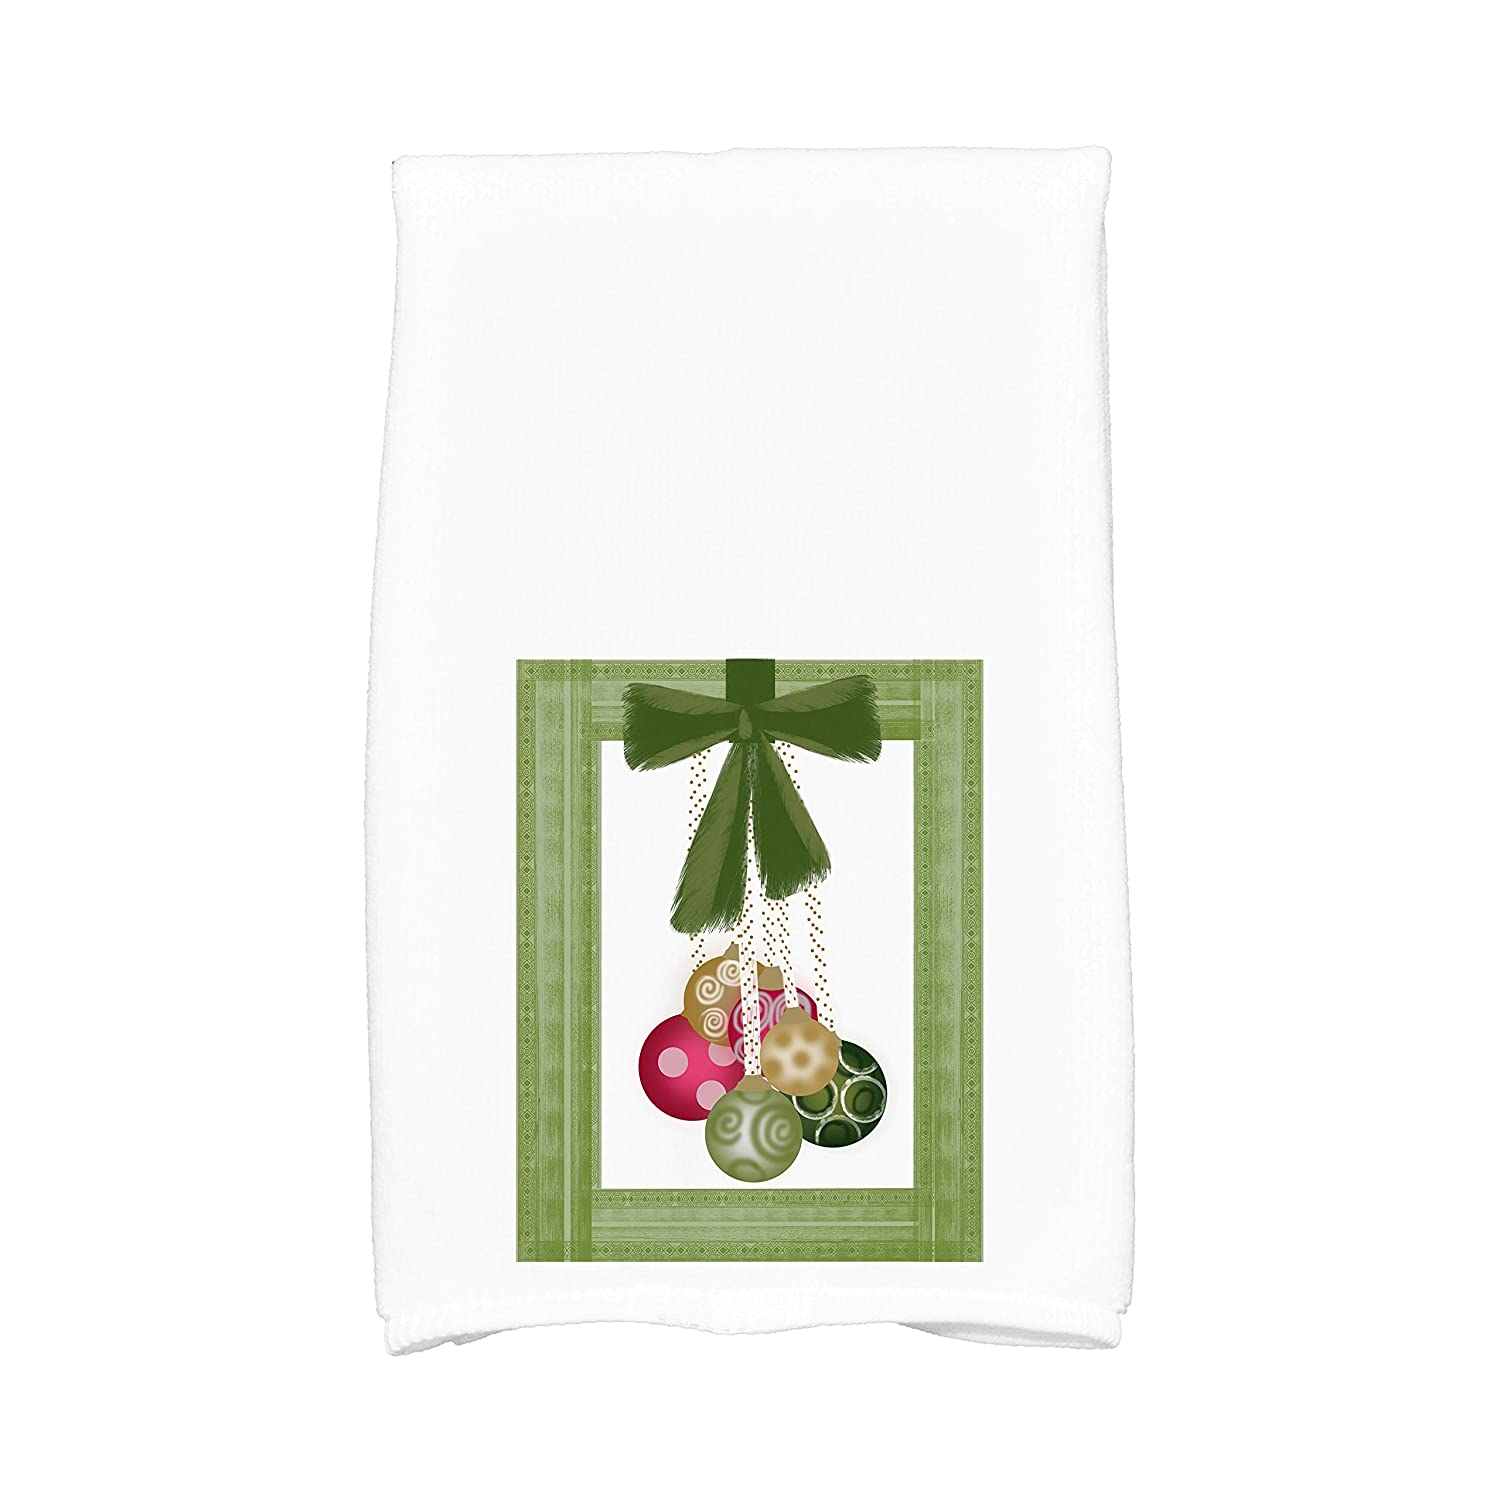 E by design KTHG959GR10 Frame It up, Geometric Print Kitchen Towel, 16 x 25, Green